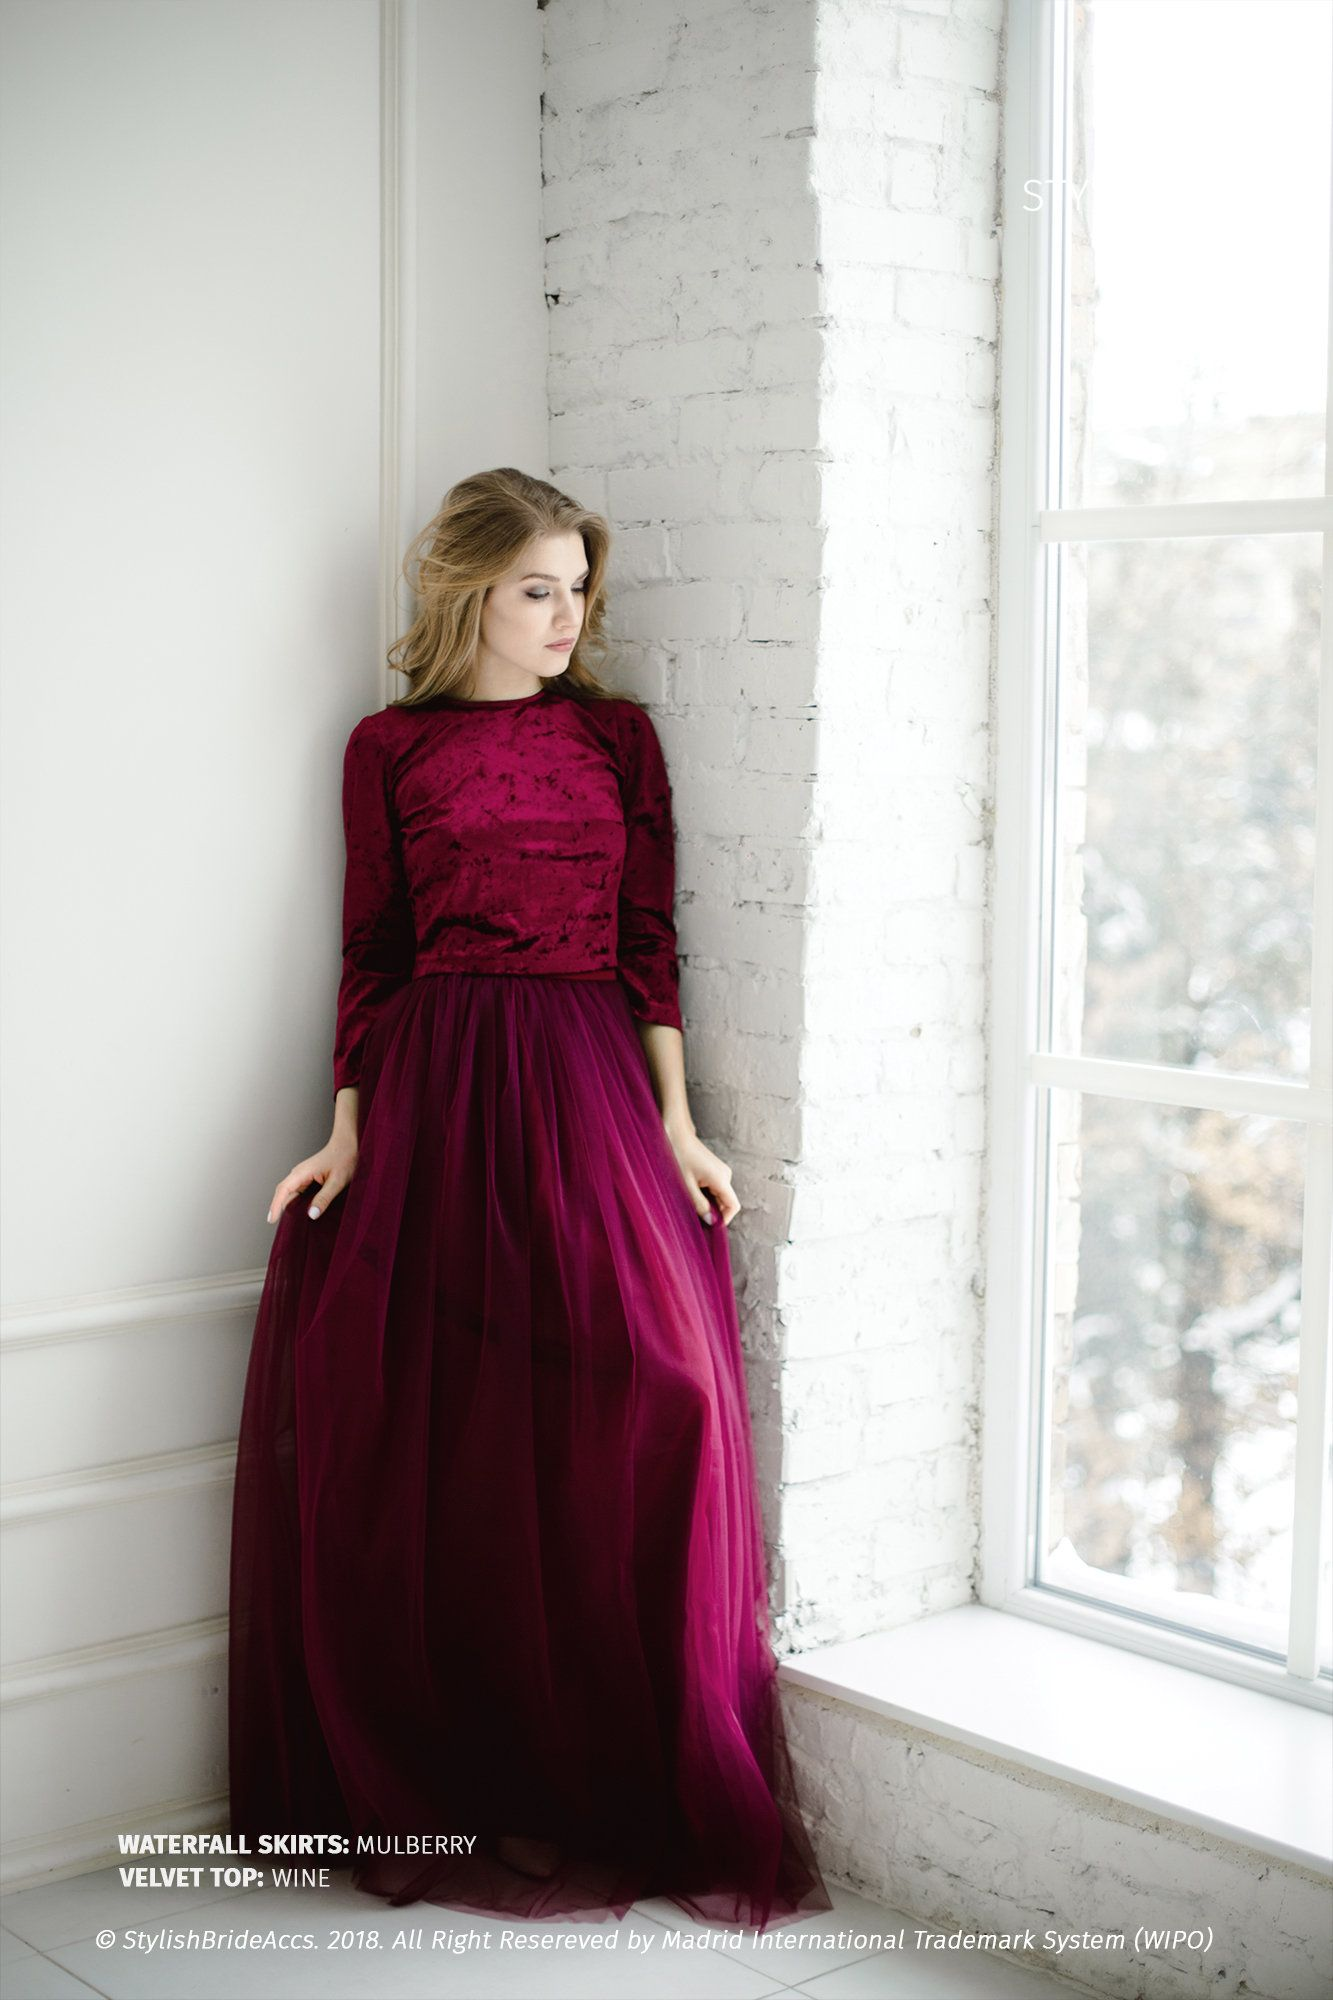 cdaaef67d Wine Velvet Dress, Velvet Wine Crop Top and Tulle Skirt , Wine Engagement  Dress Plus Size by StylishBrideAccs on Etsy